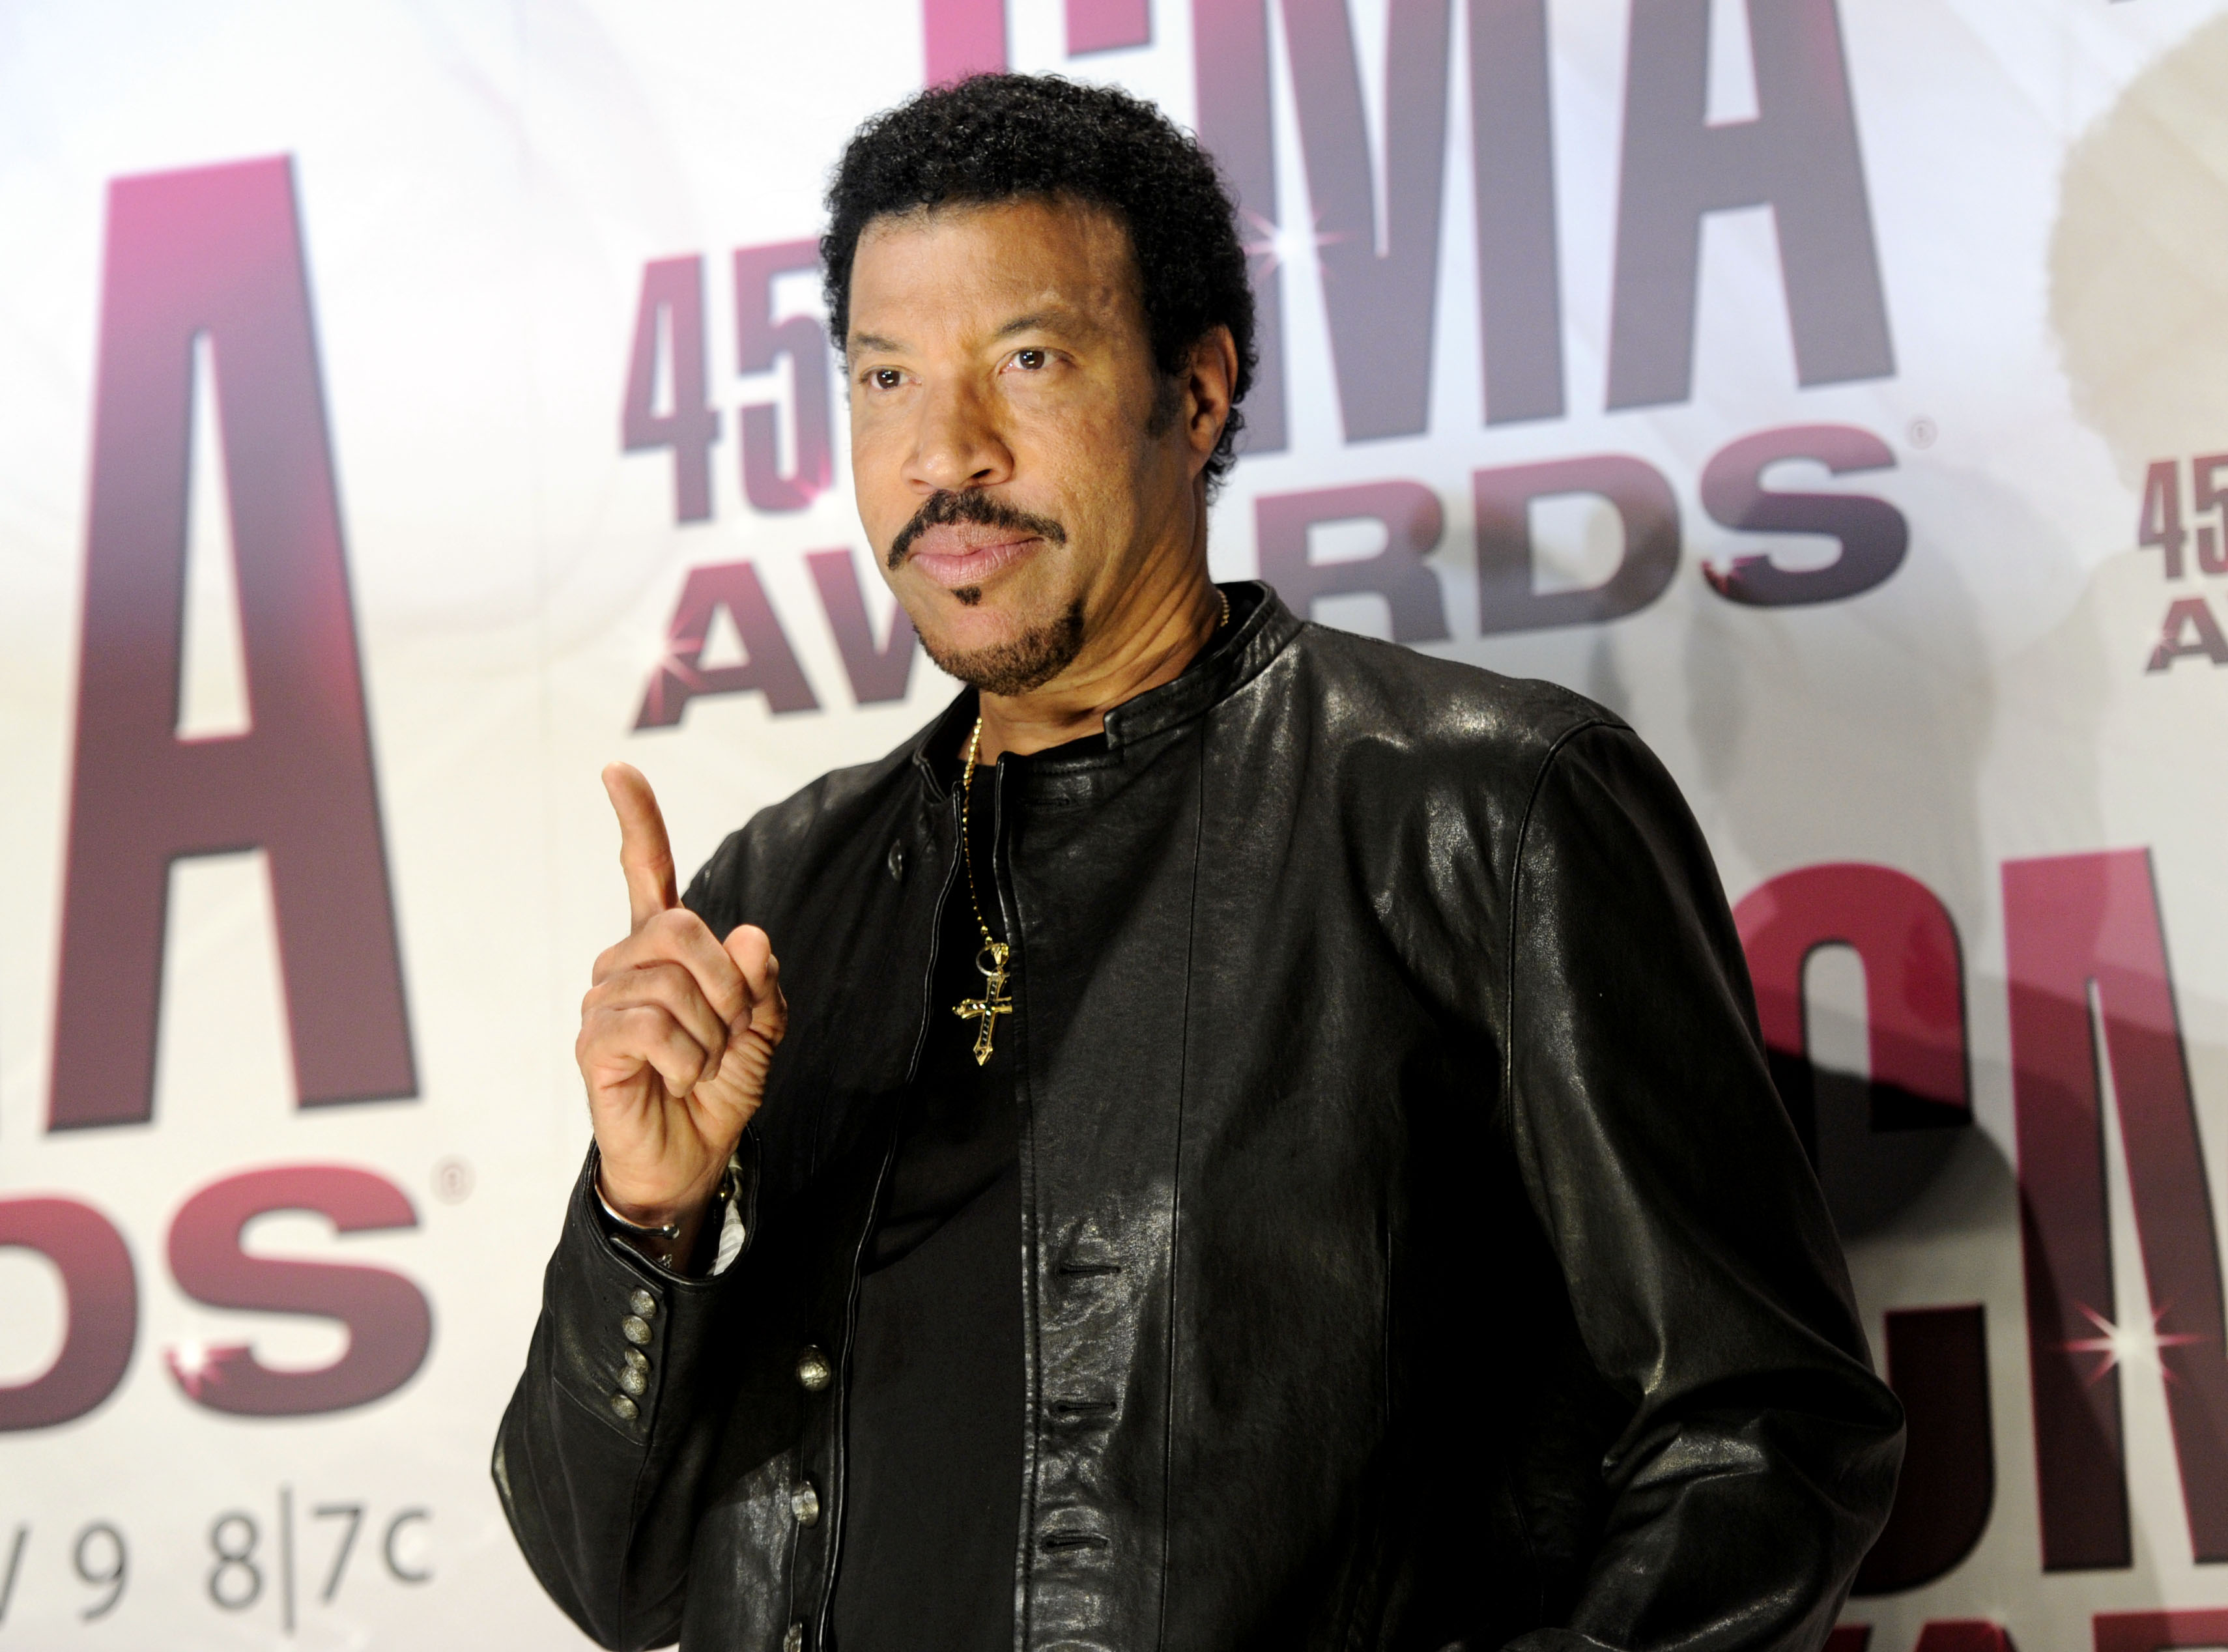 Lionel Richie poses backstage at the 45th Annual CMA Awards in Nashville, Tenn., on Wednesday, Nov. 9, 2011. (AP Photo/Evan Agostini)